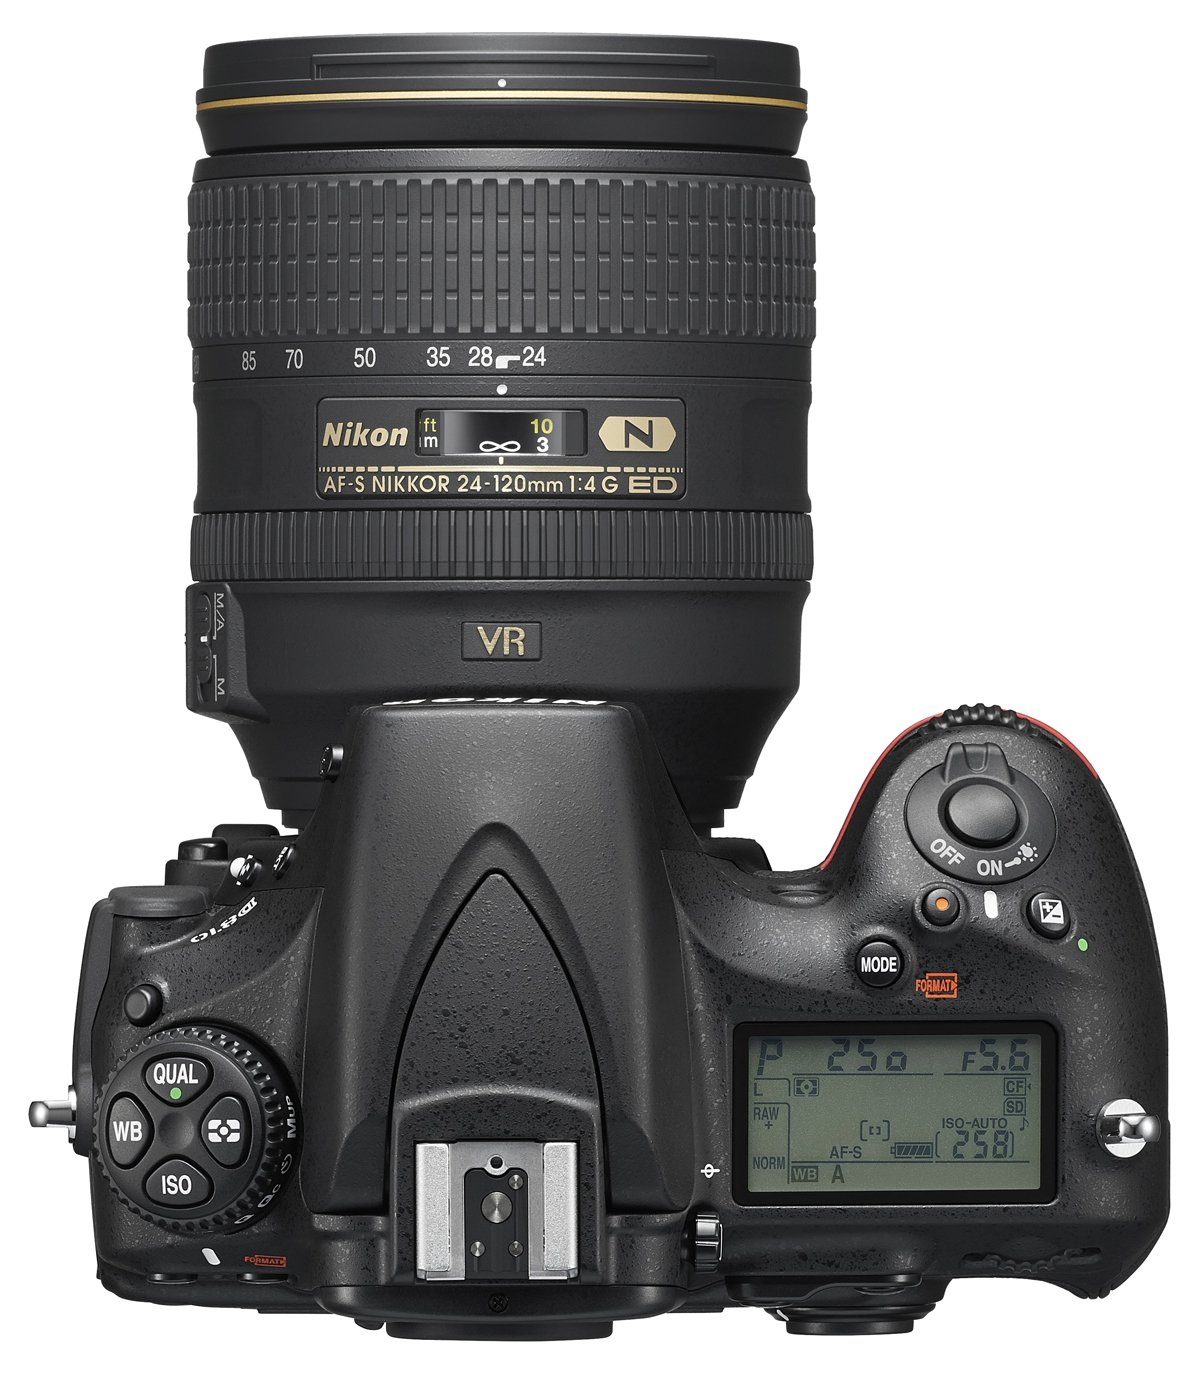 NIKON D810 + 24-120 mm VR + NIKON PowerBank